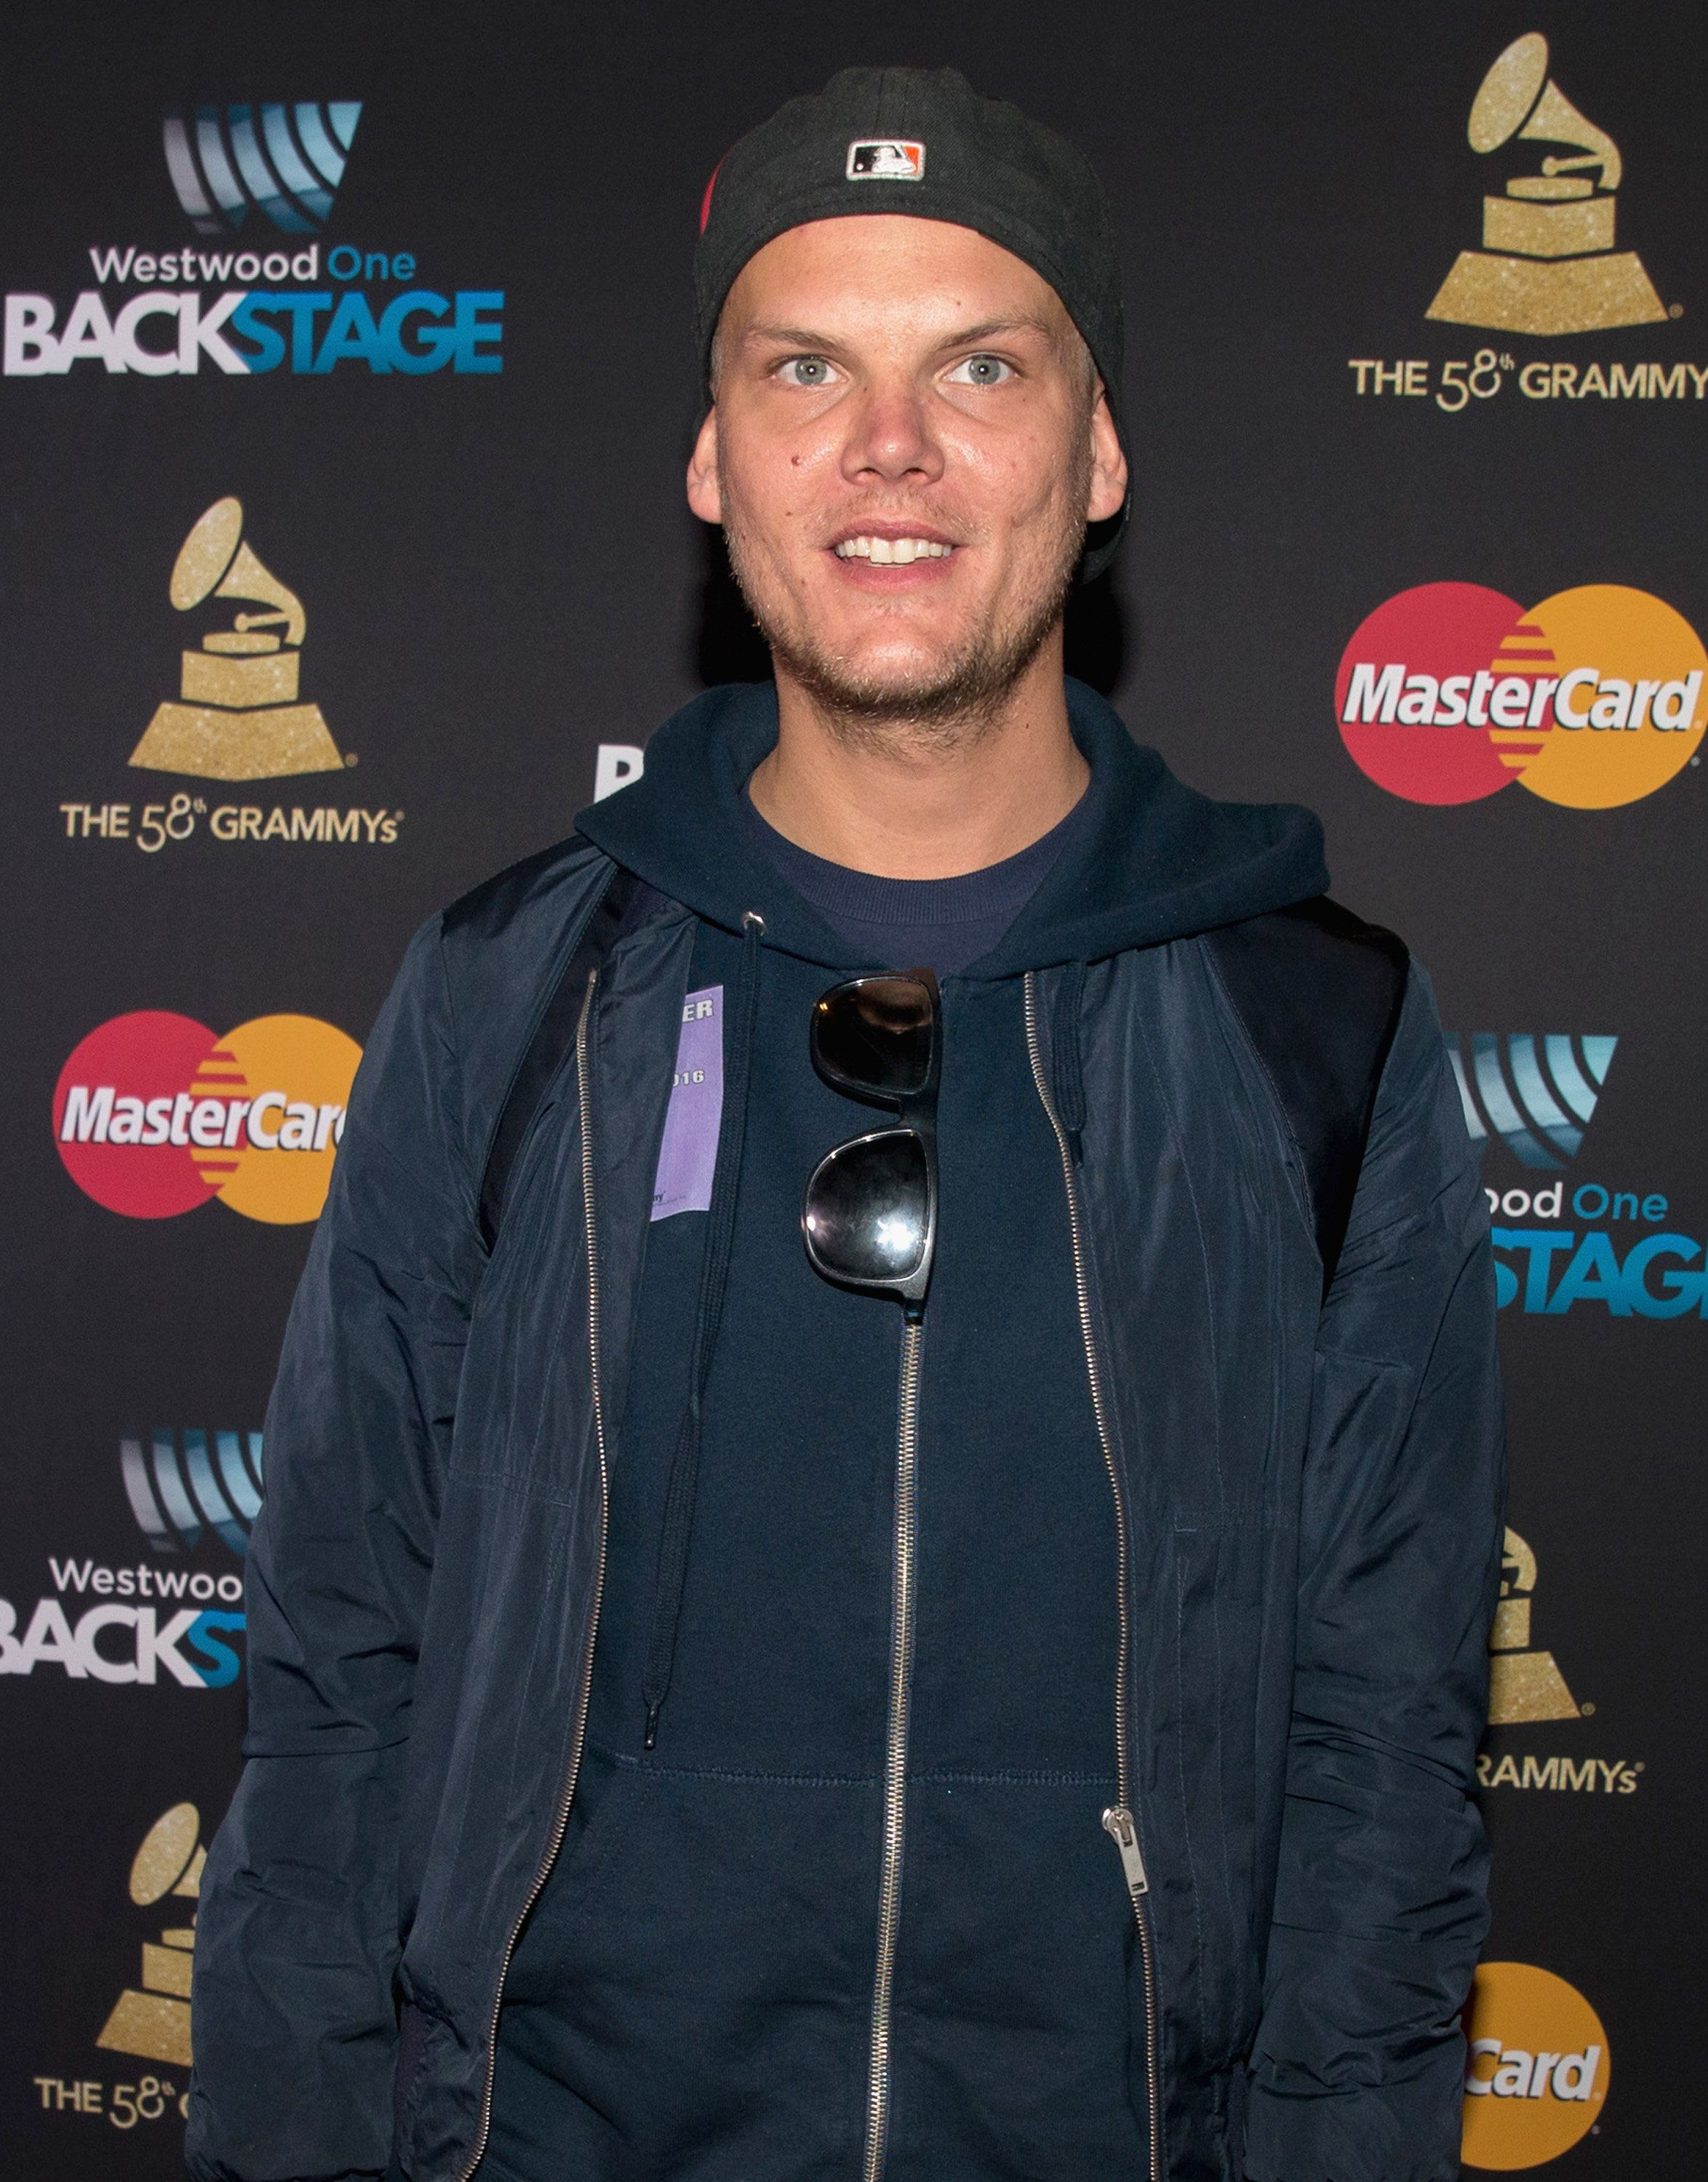 Avicii's Family Say He 'Could Not Go On Any Longer', In Devastating New Statement